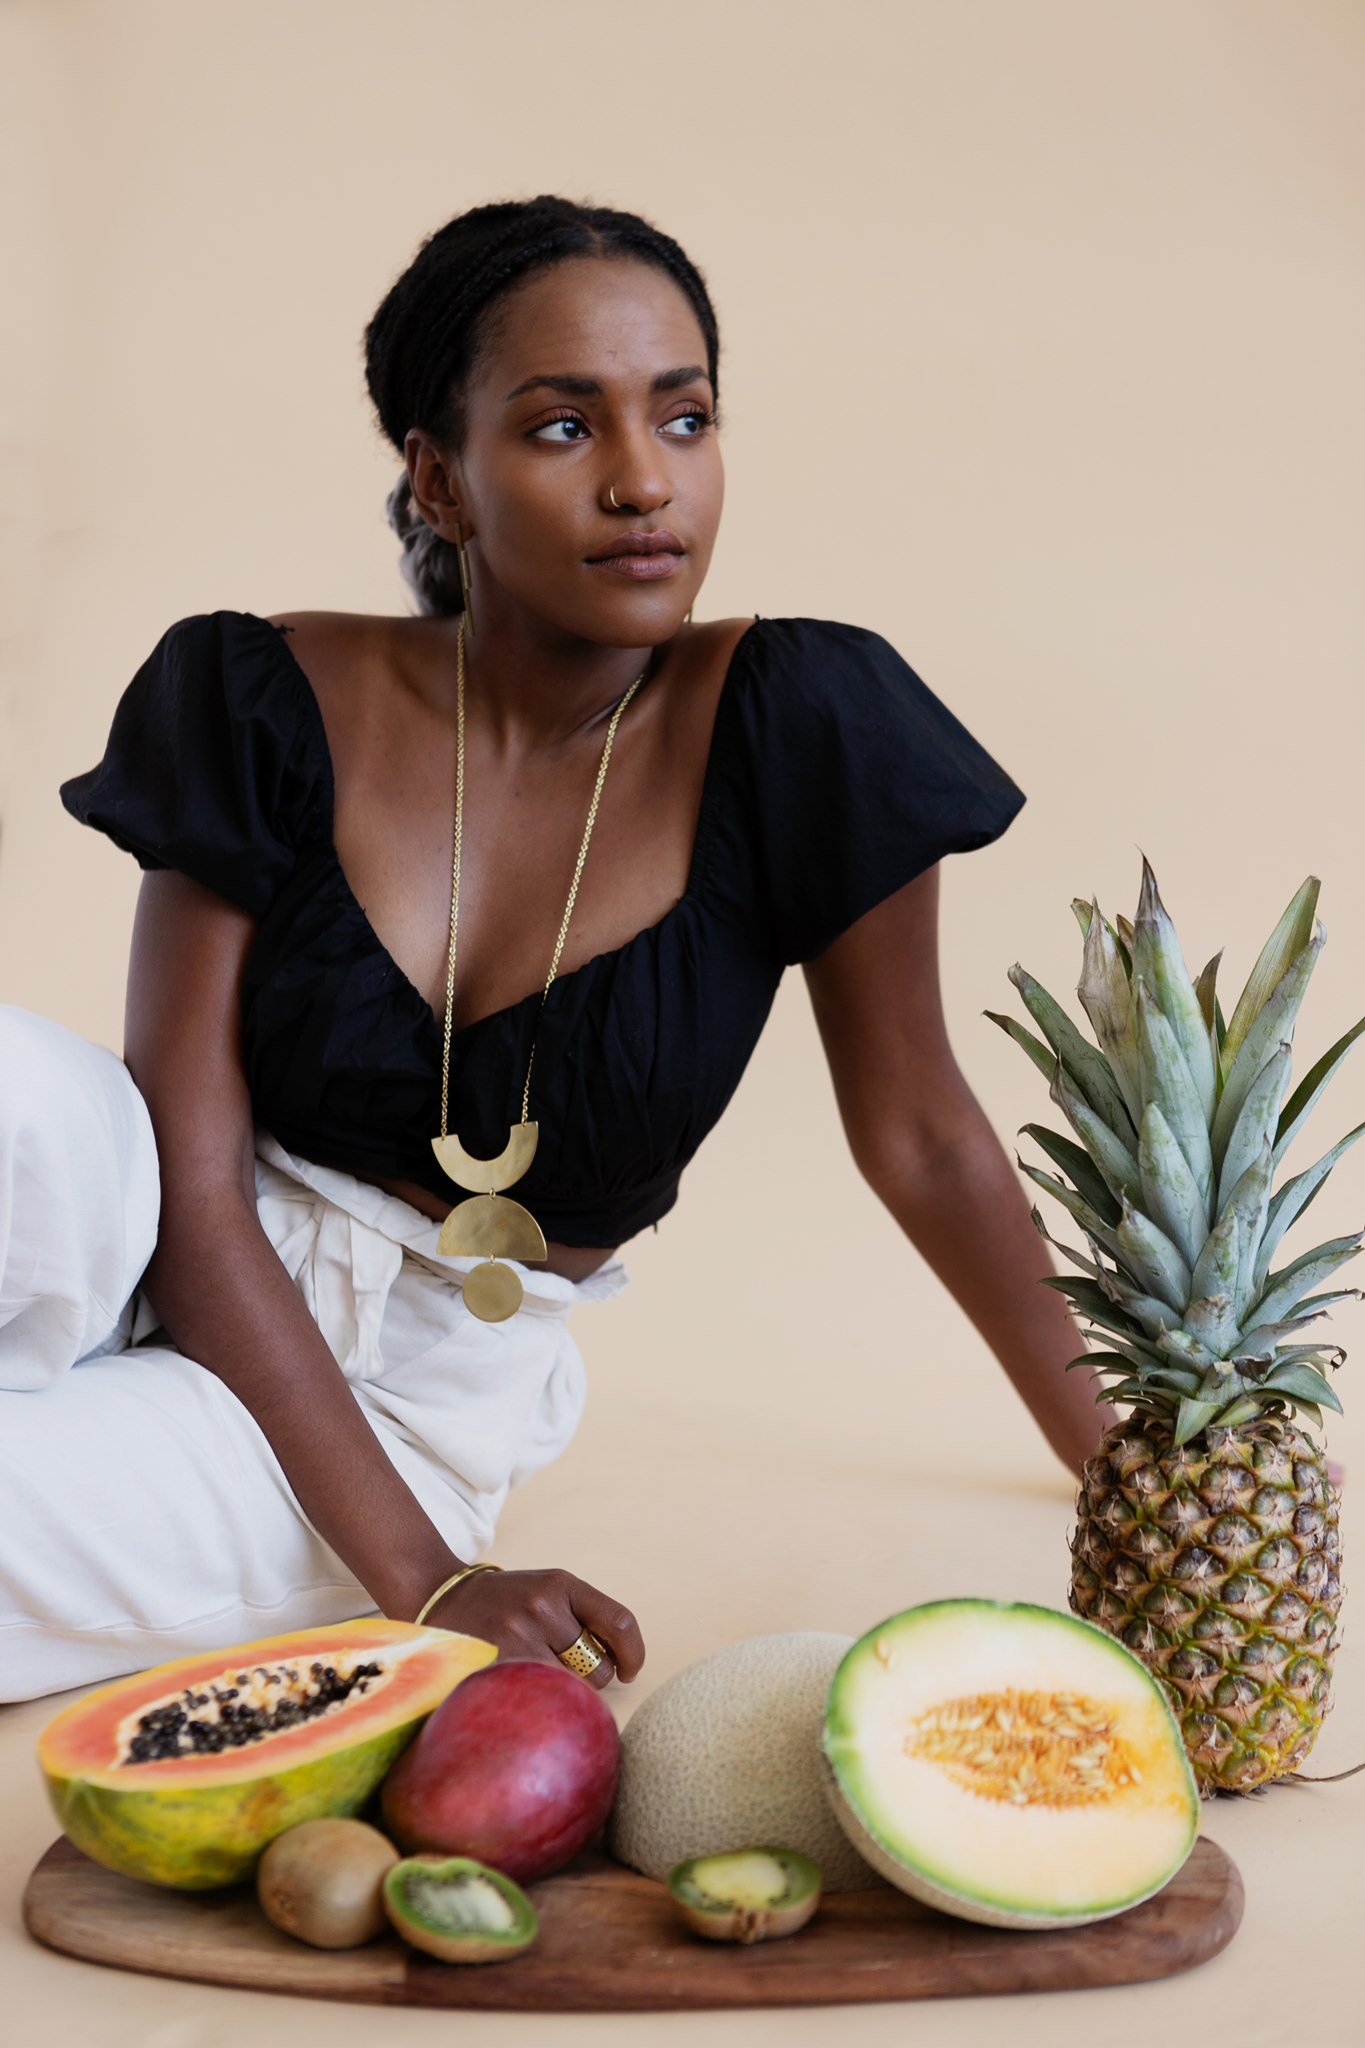 fruit necklace sustainable artisan jewelry nepal portland maine fair-wage modern jewelry mulxiply